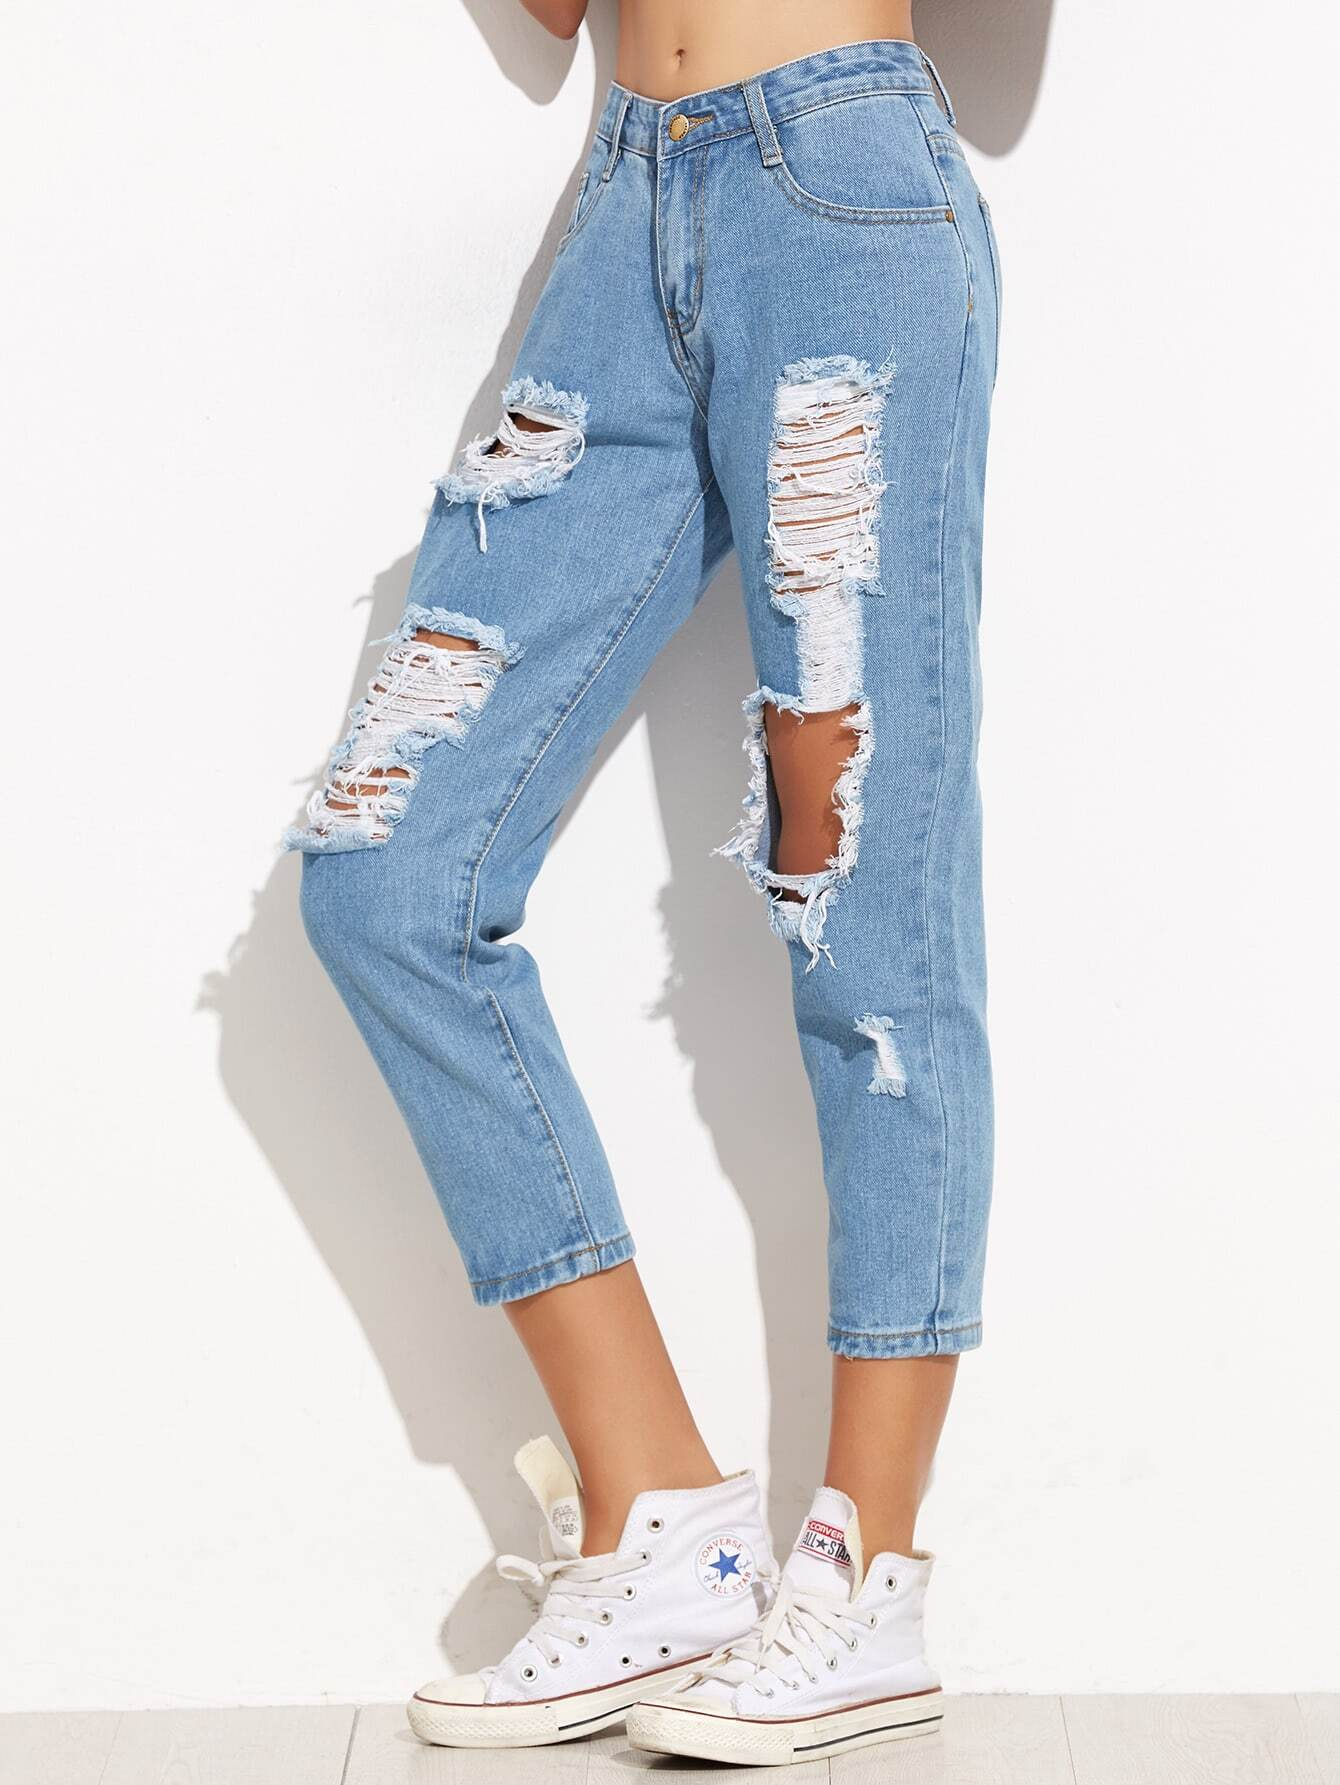 Blue Ripped Skinny Ankle JeansBlue Ripped Skinny Ankle Jeans<br><br>color: Blue<br>size: L,M,S